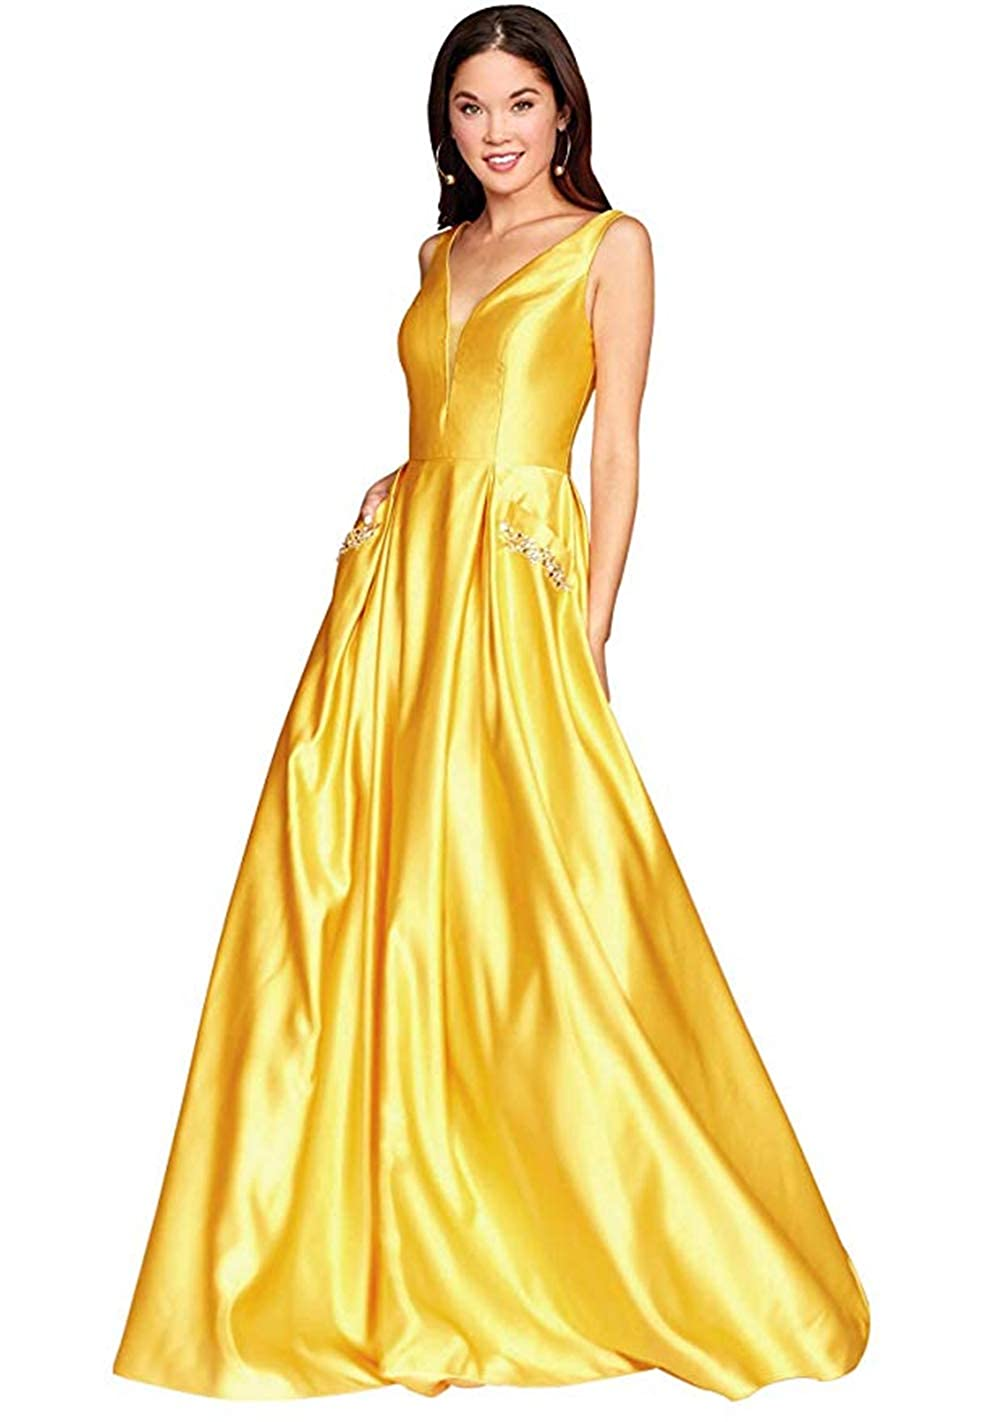 01yellow PROMNOVAS Women's V Neck Backless Beaded Satin Prom Dress Long Formal Evening Gown with Pockets